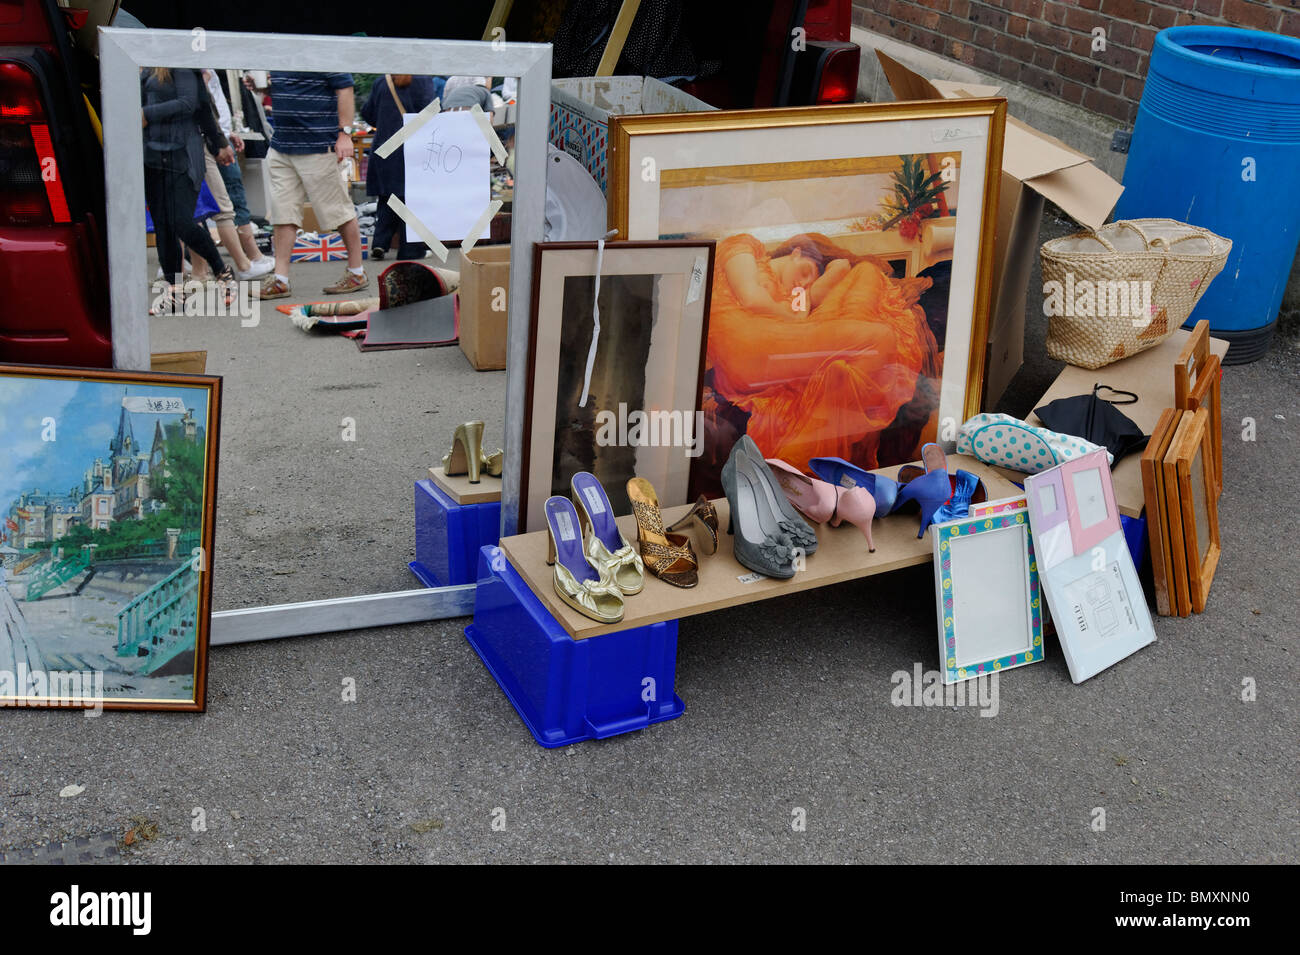 Car boot sale shoppers can see these wares in Chiswick, West London - Stock Image